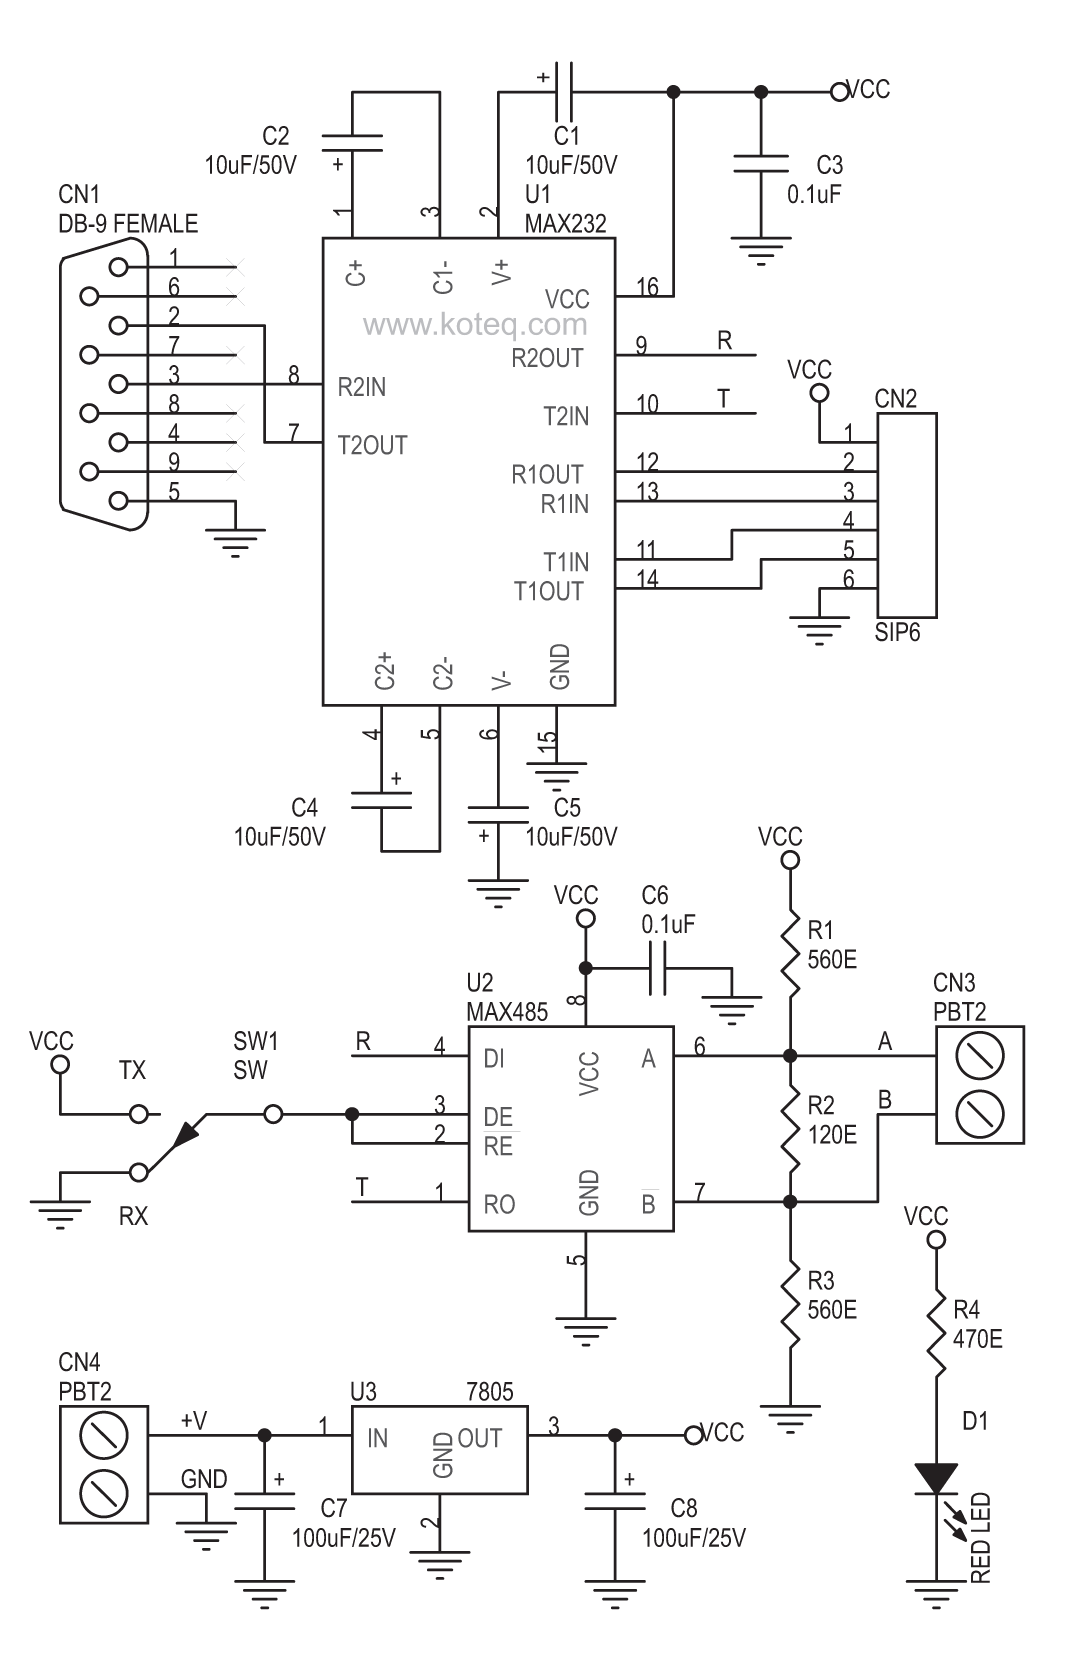 hight resolution of rs232 to rs485 converter board using max232 max485 circuit ideas rs232 rs485 converter circuit rs232 rs485 converter schematic